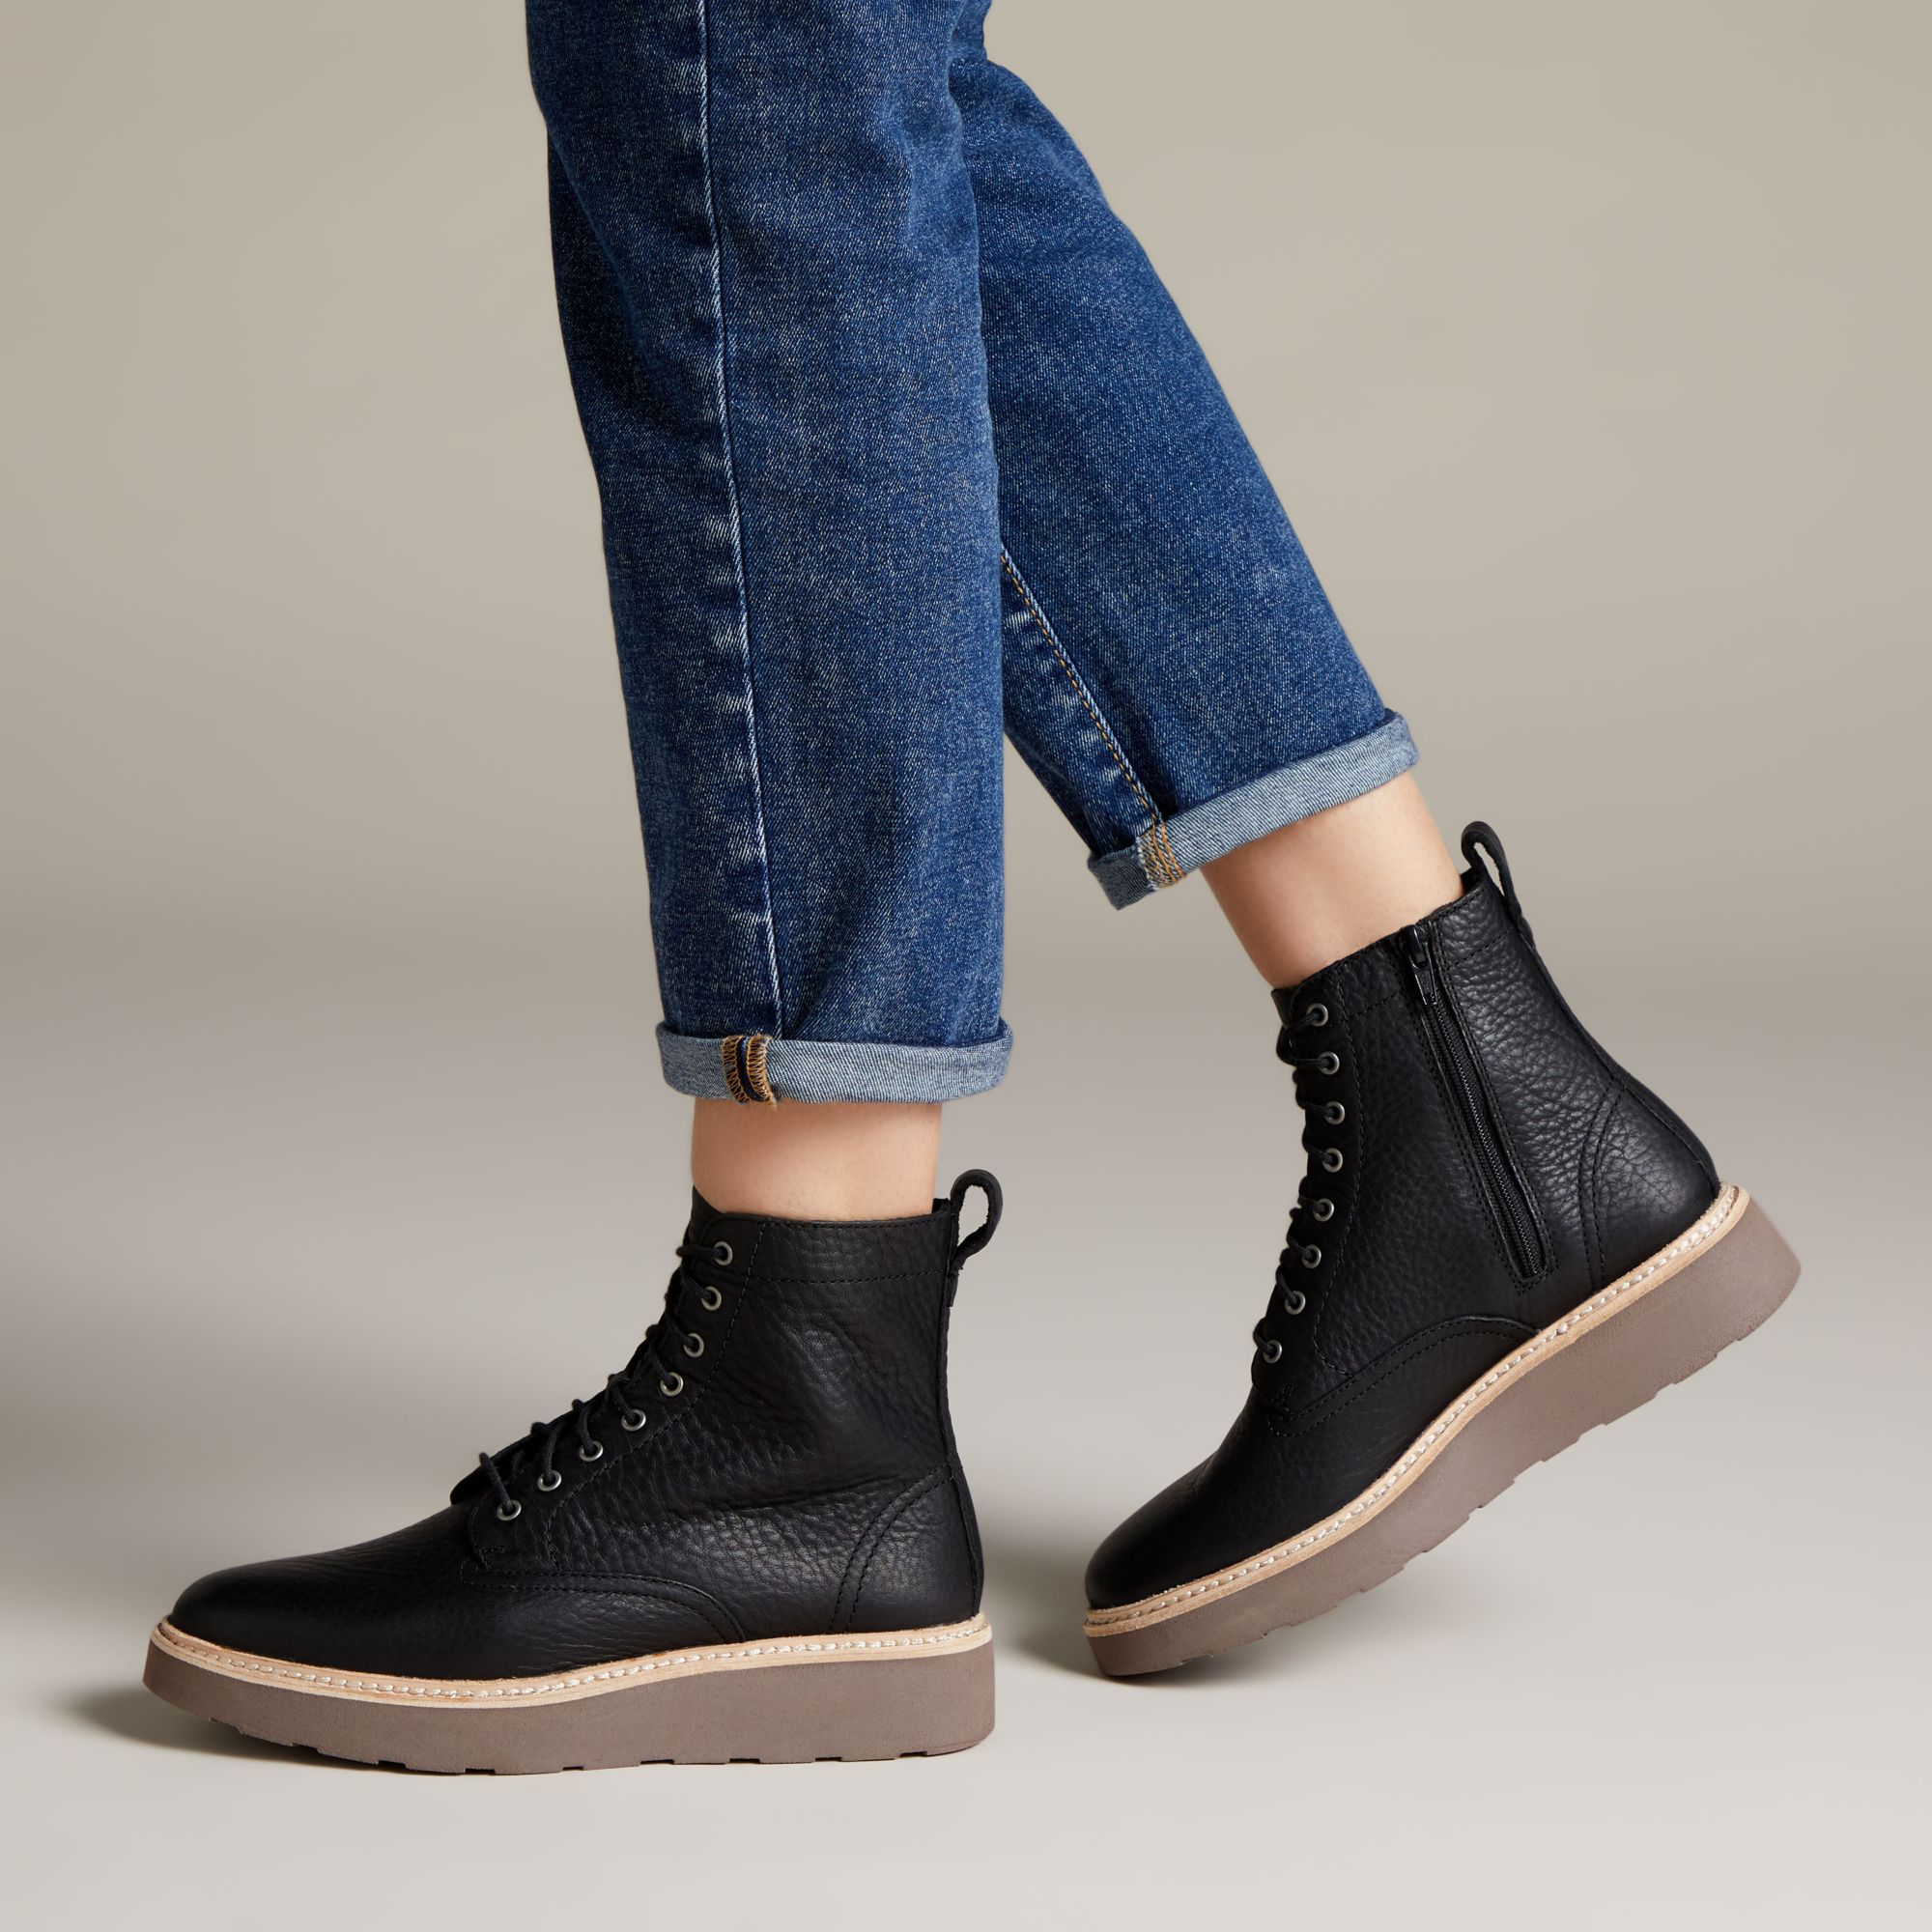 Clarks up to 80% off!